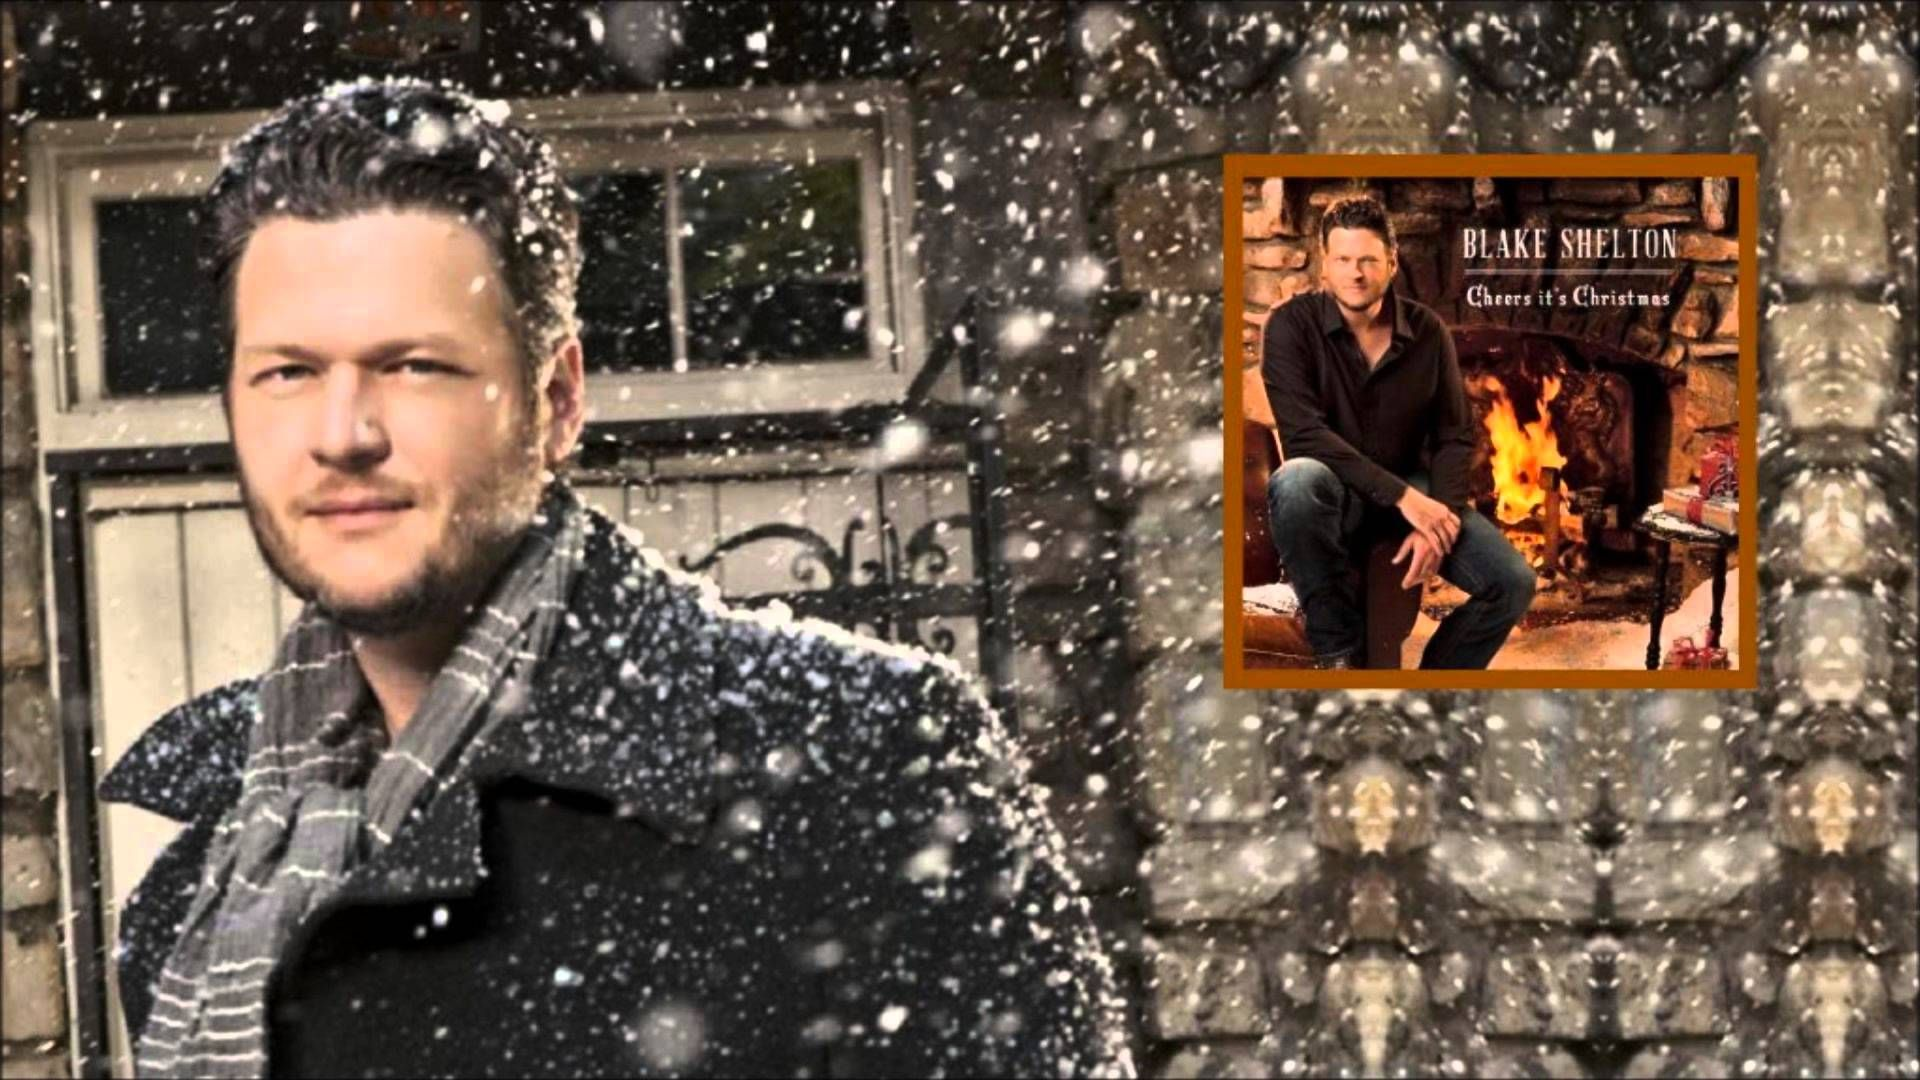 Blake Shelton Cheers Its Christmas.Blake Shelton Cheers Its Christmas Full Album